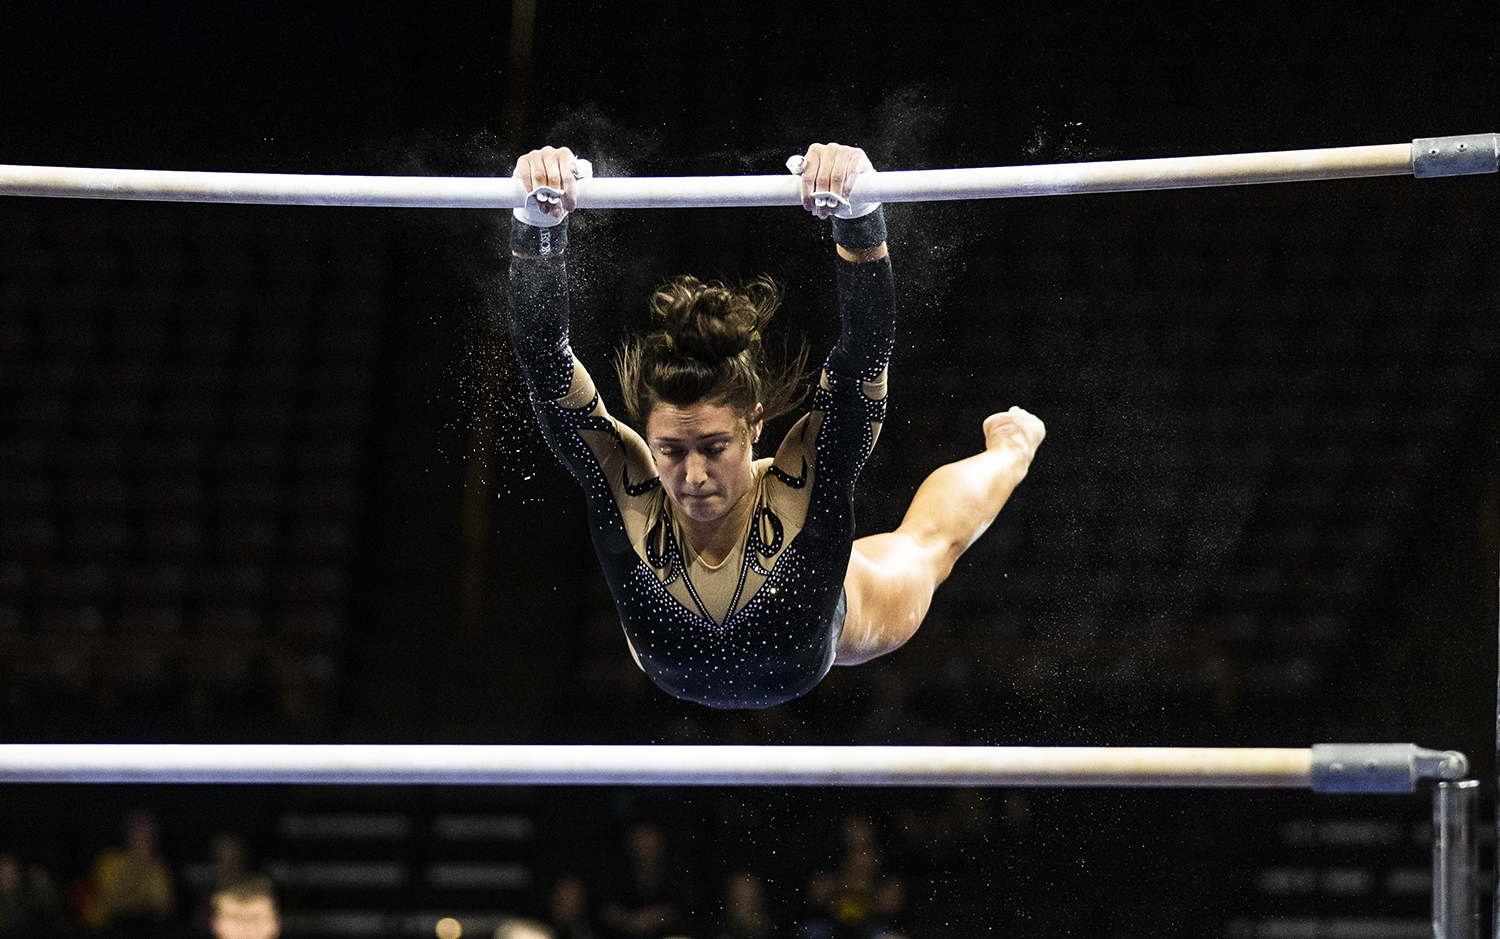 Iowa+gymnast+Jax+Kranitz+performs+on+the+uneven+bars+during+the+women%27s+gymnastics+meet+vs.+SEMO+at+Carver-Hawkeye+Arena+on+Friday%2C+January+11%2C+2019.+The+GymHawks+defeated+the+Redhawks+194.700-180.925.+